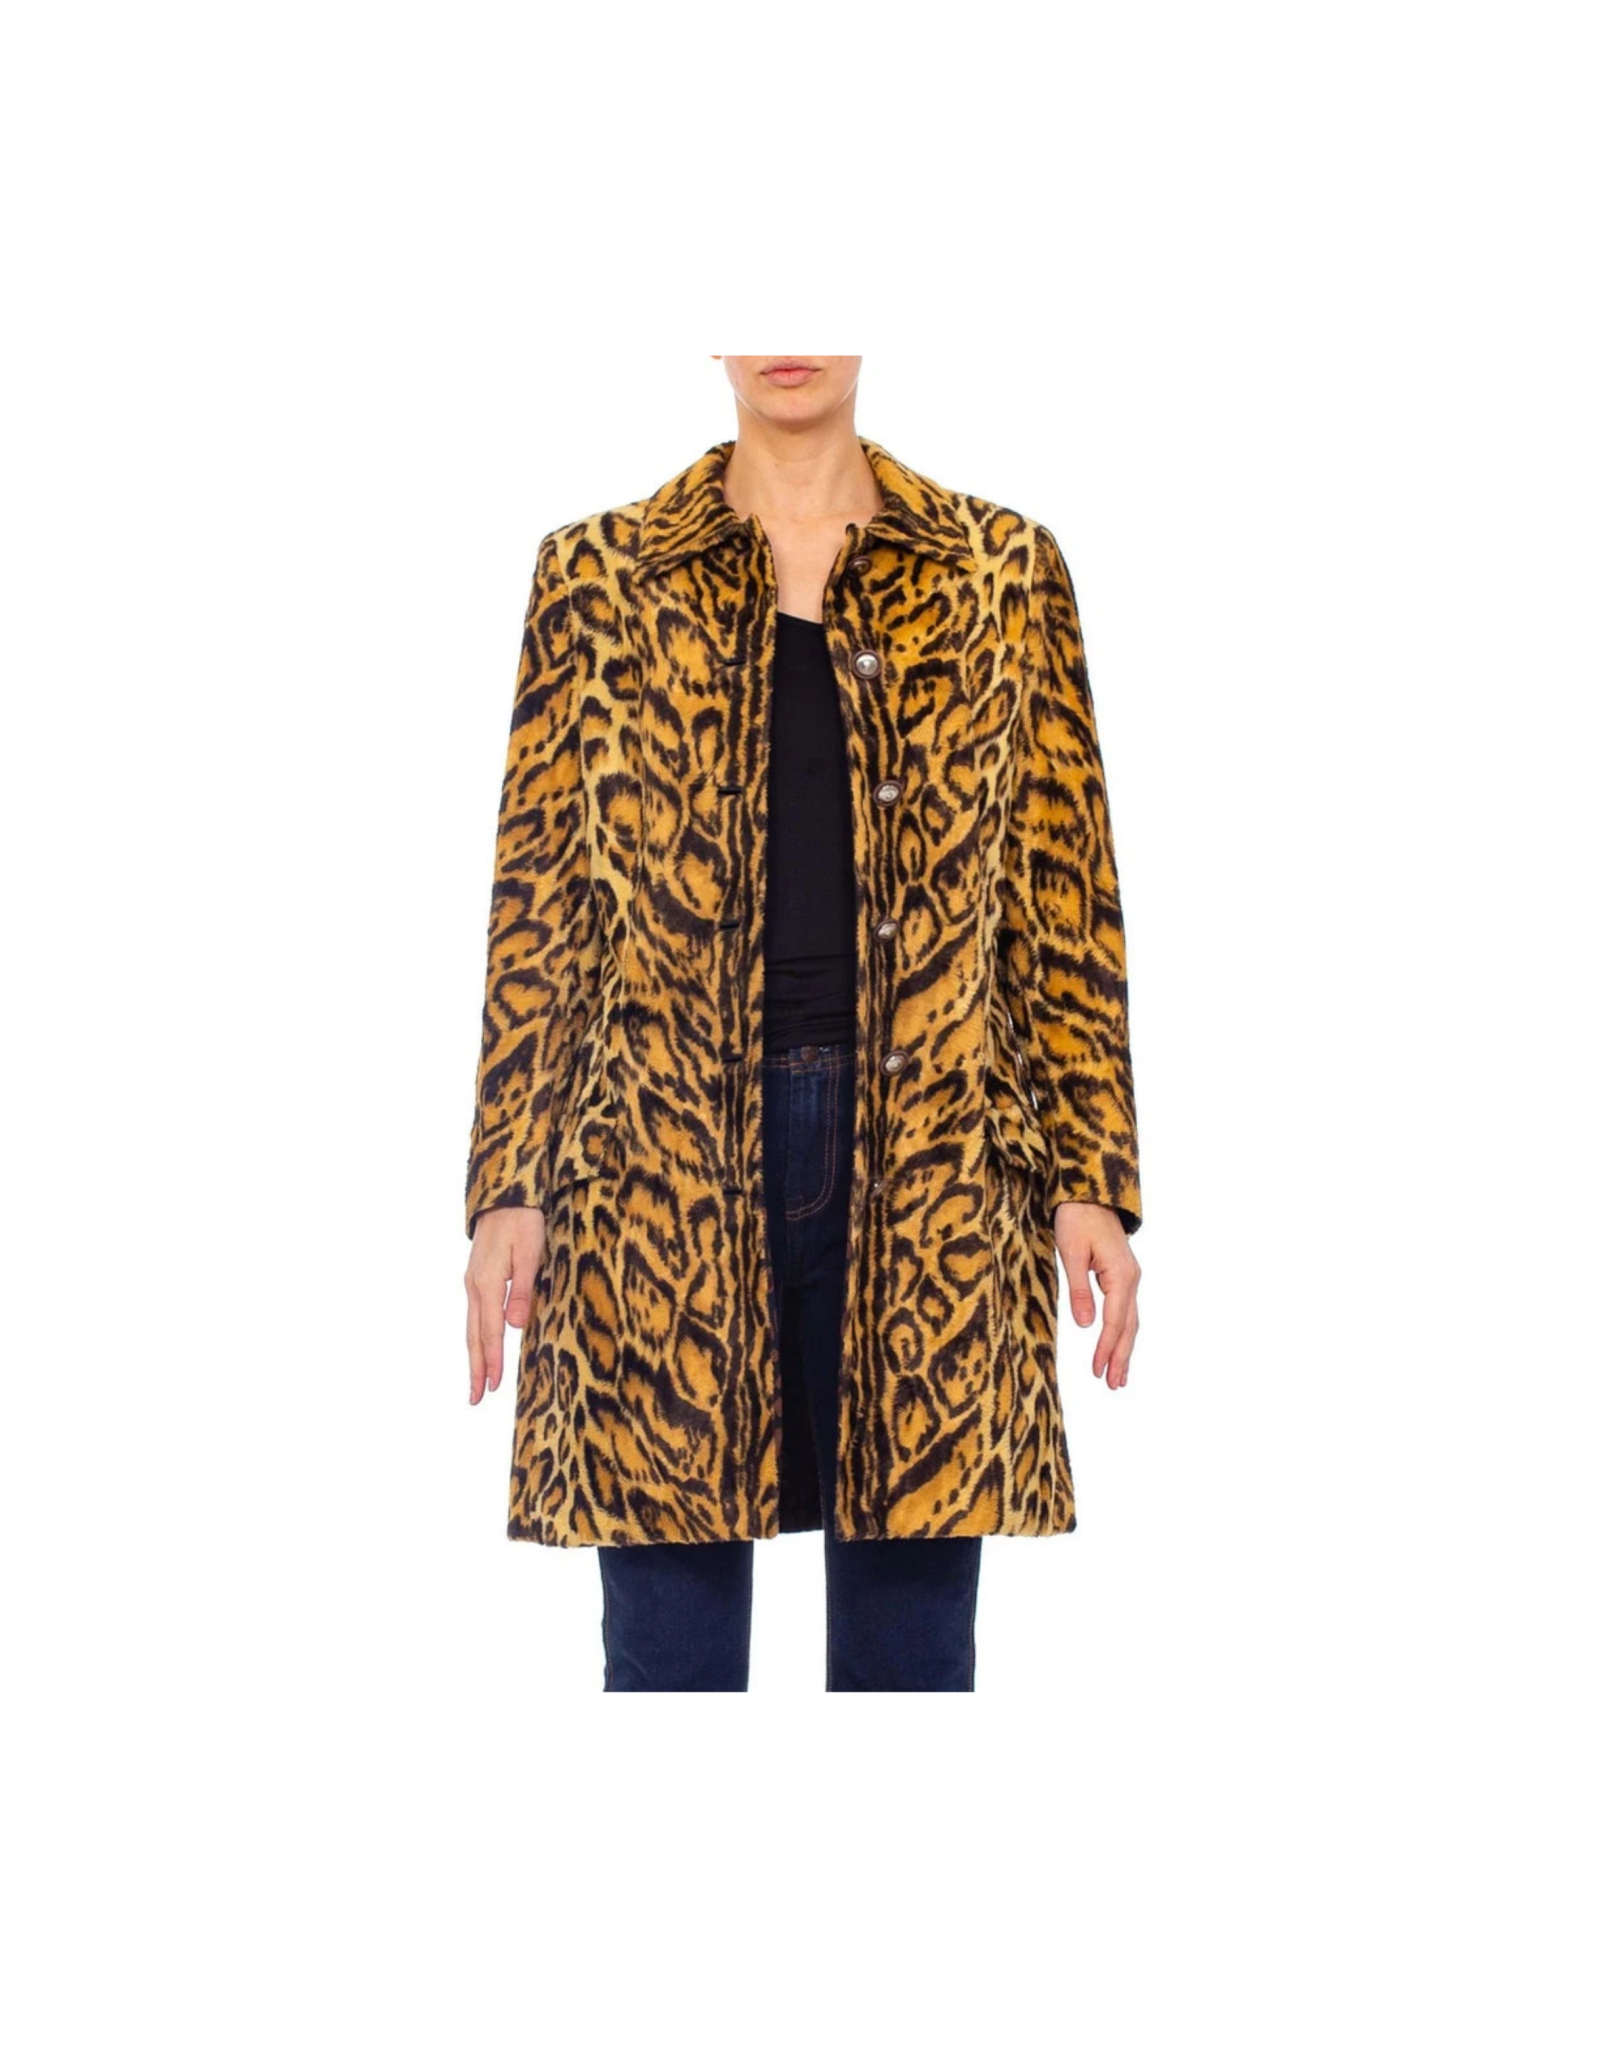 Wyld Blue Vintage Gianni Versace Leopard Coat (1990s)